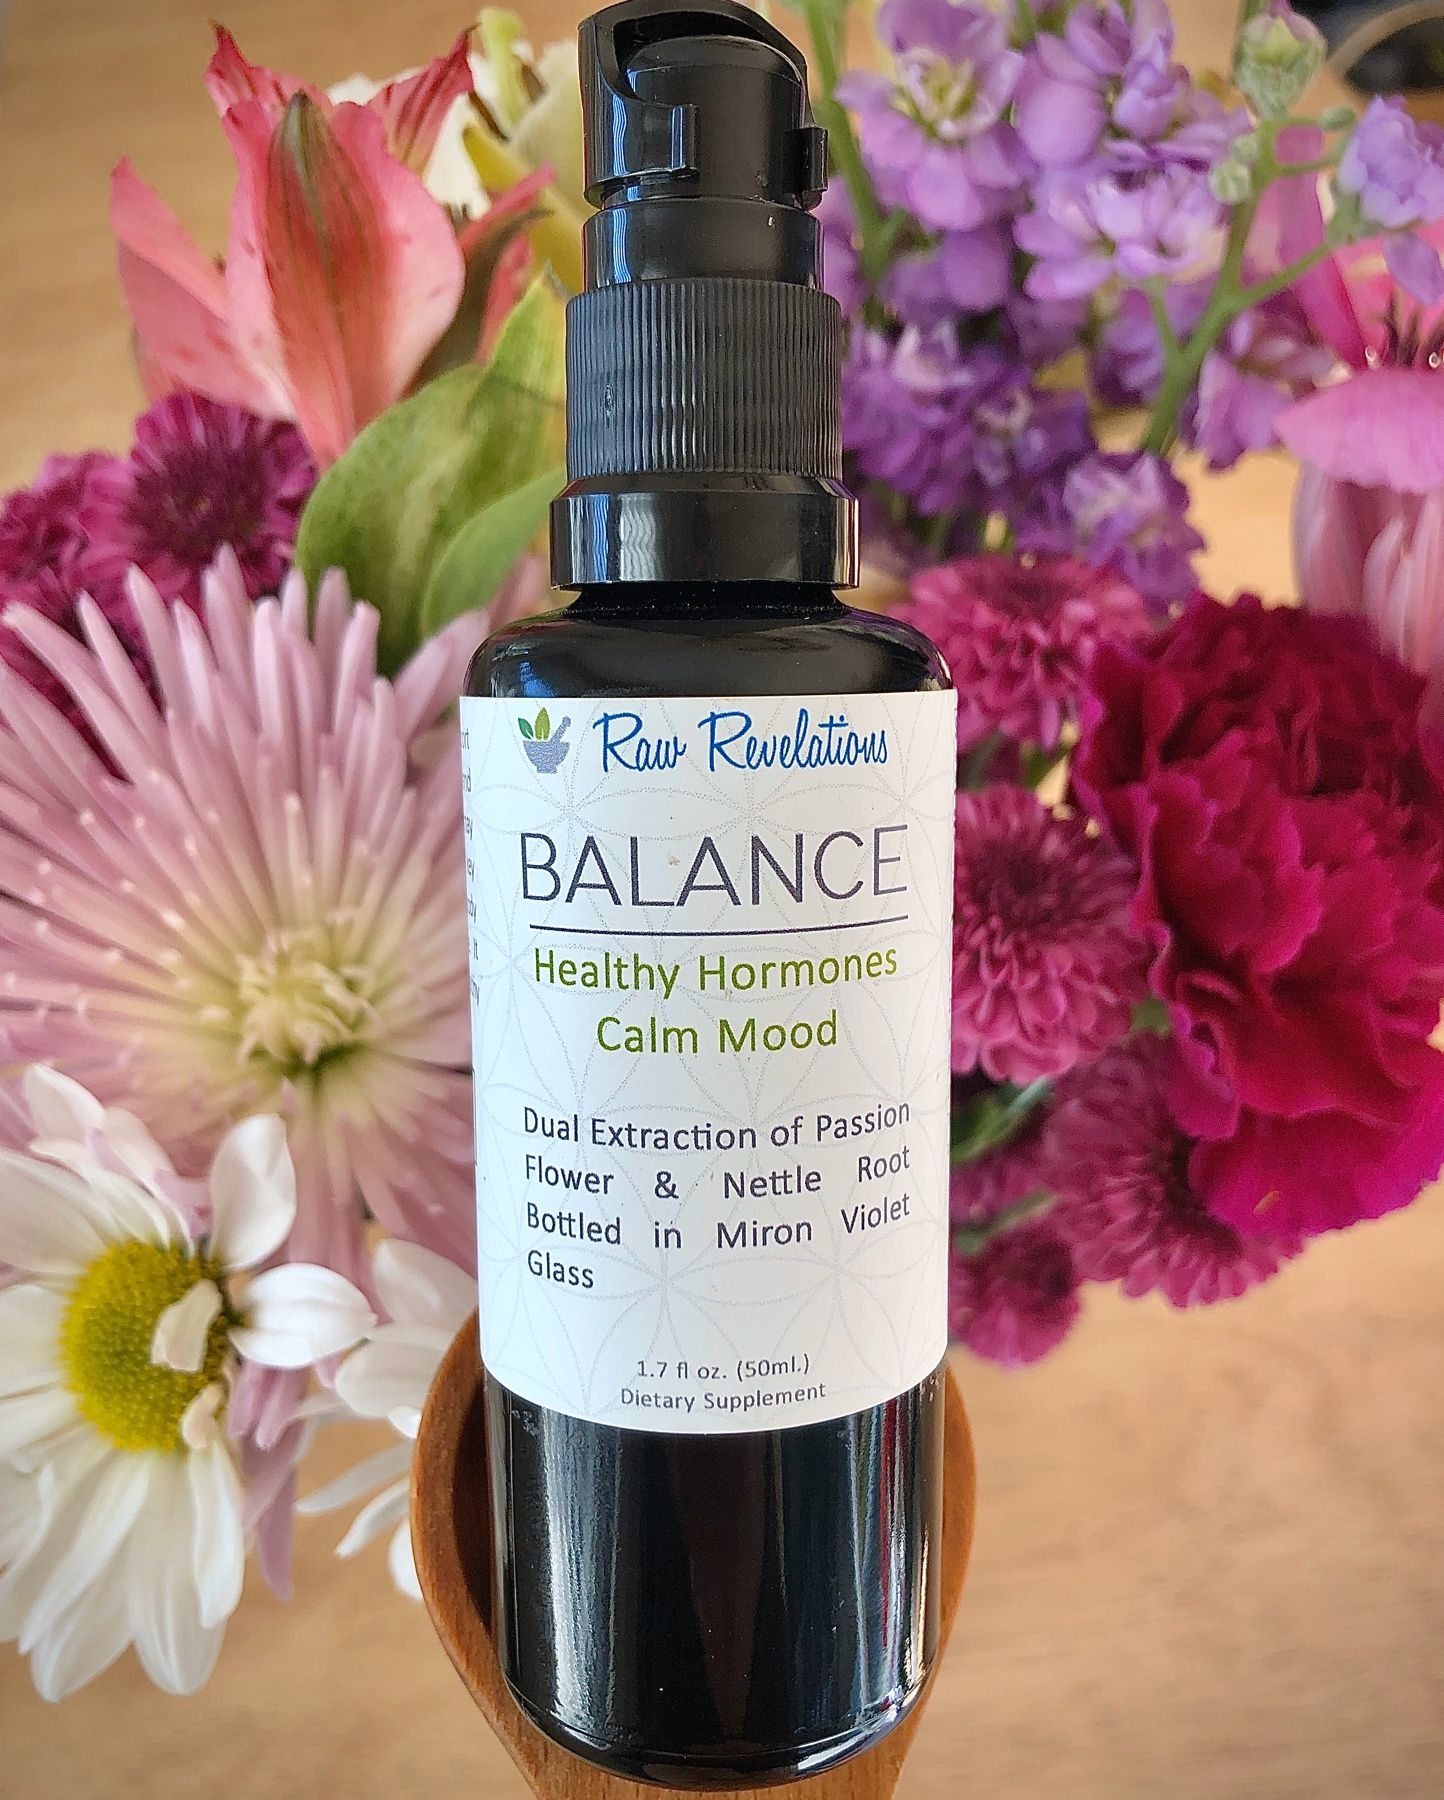 Balance 50ml In 2020 Healthy Hormones Hormones Organic Grapes